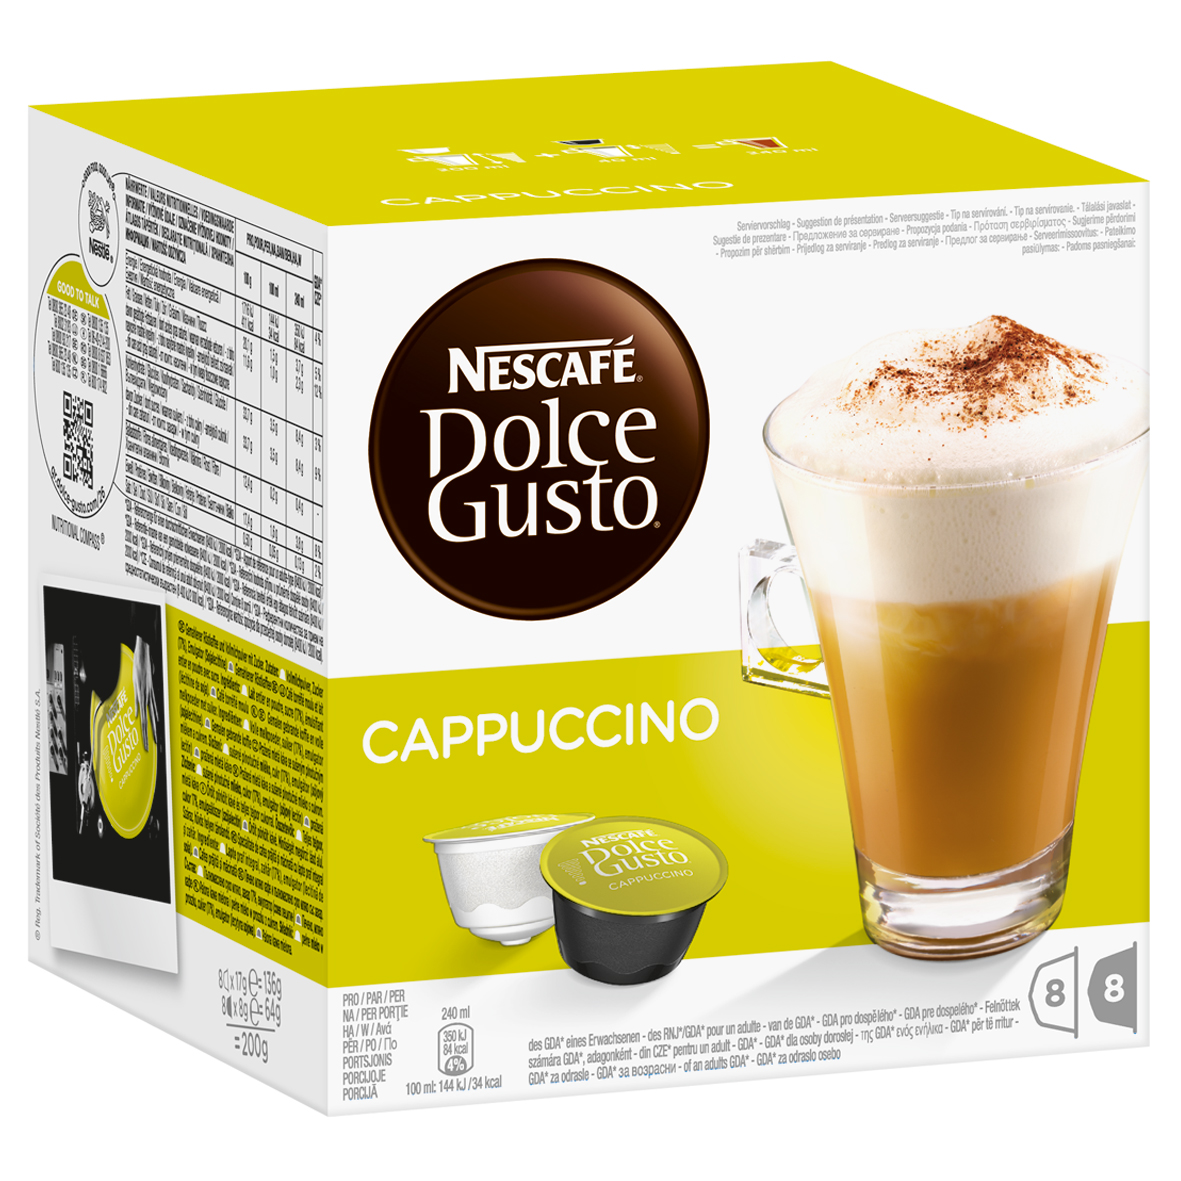 nescaf dolce gusto cappuccino 16 capsules 8 servings. Black Bedroom Furniture Sets. Home Design Ideas